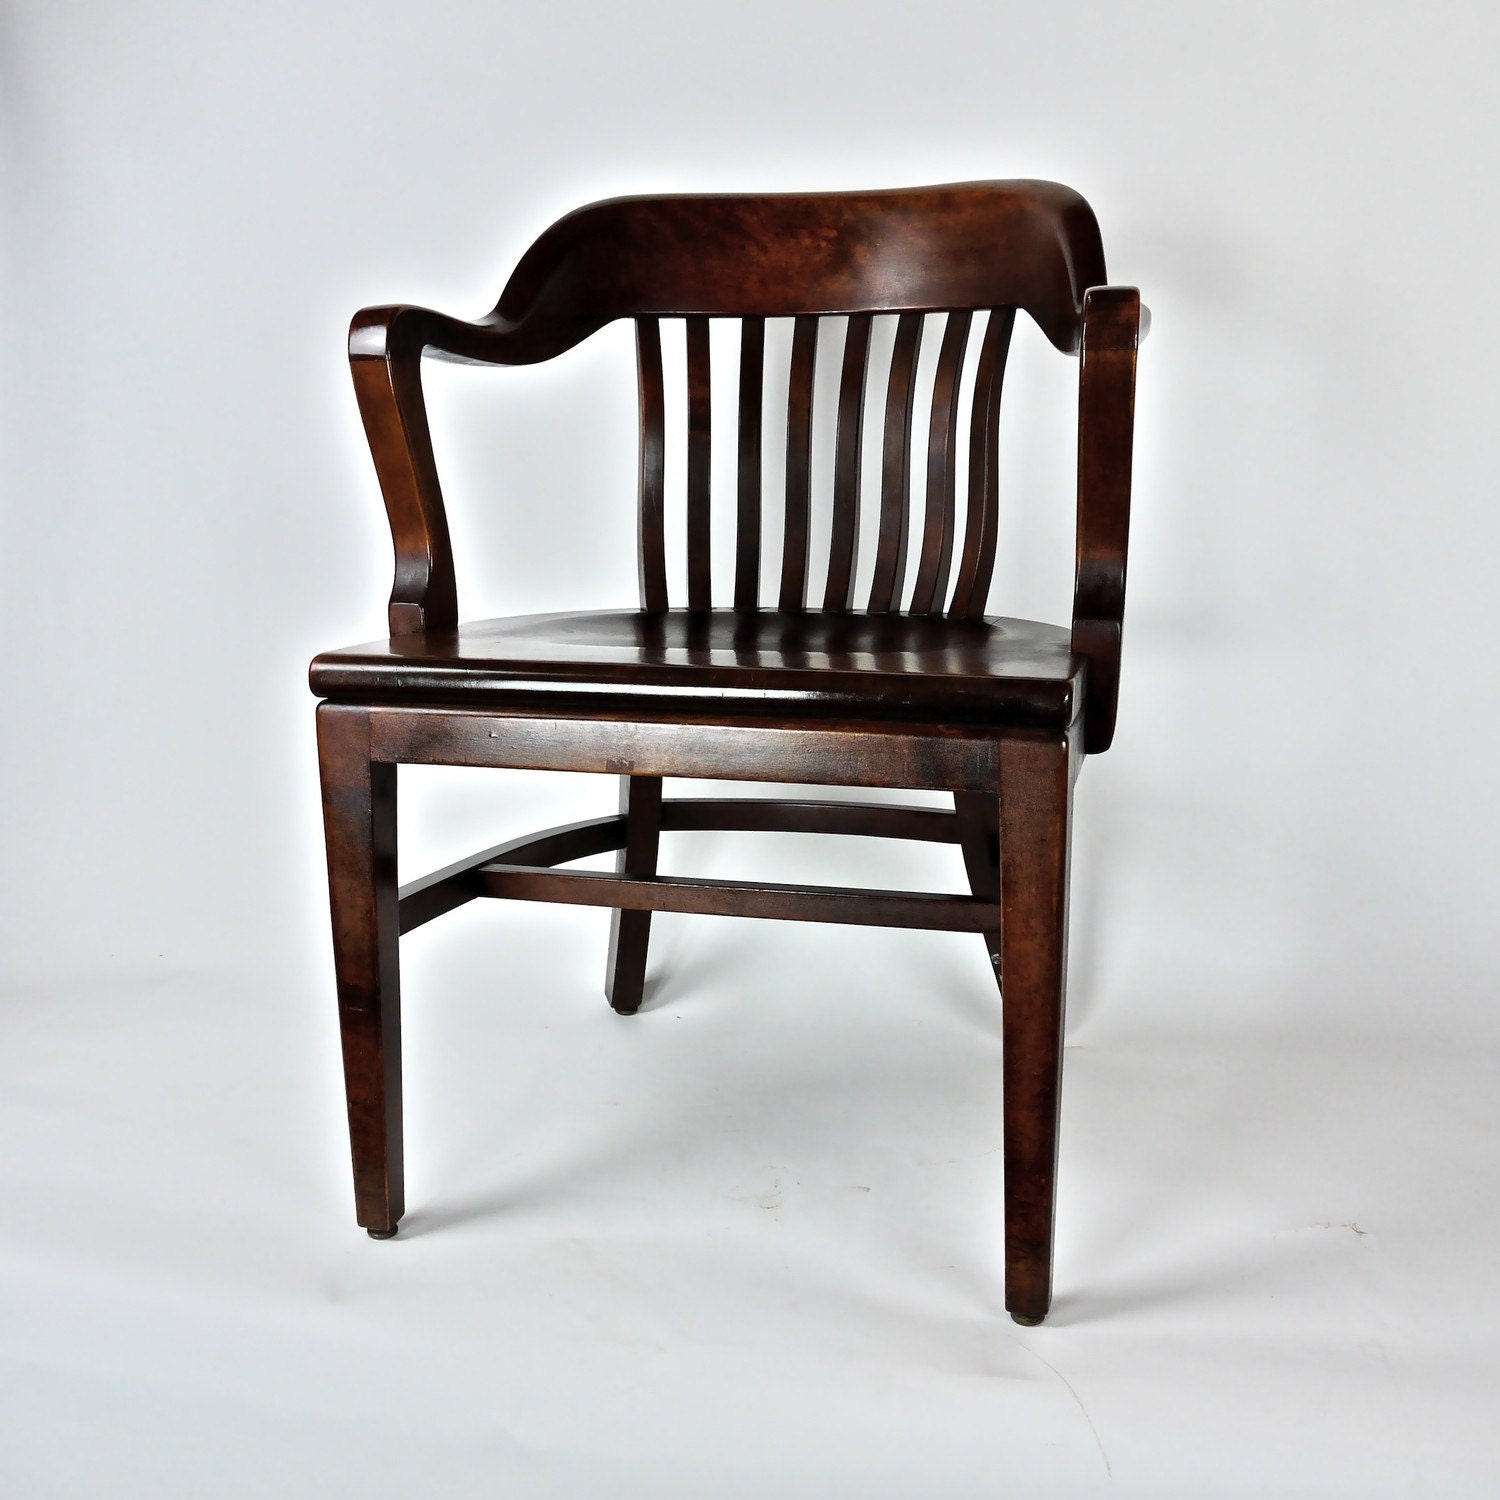 Antique Post War Wooden Office Library Chair By DailyMemorandum. Full resolution‎  portraiture, nominally Width 1500 Height 1500 pixels, portraiture with #291612.